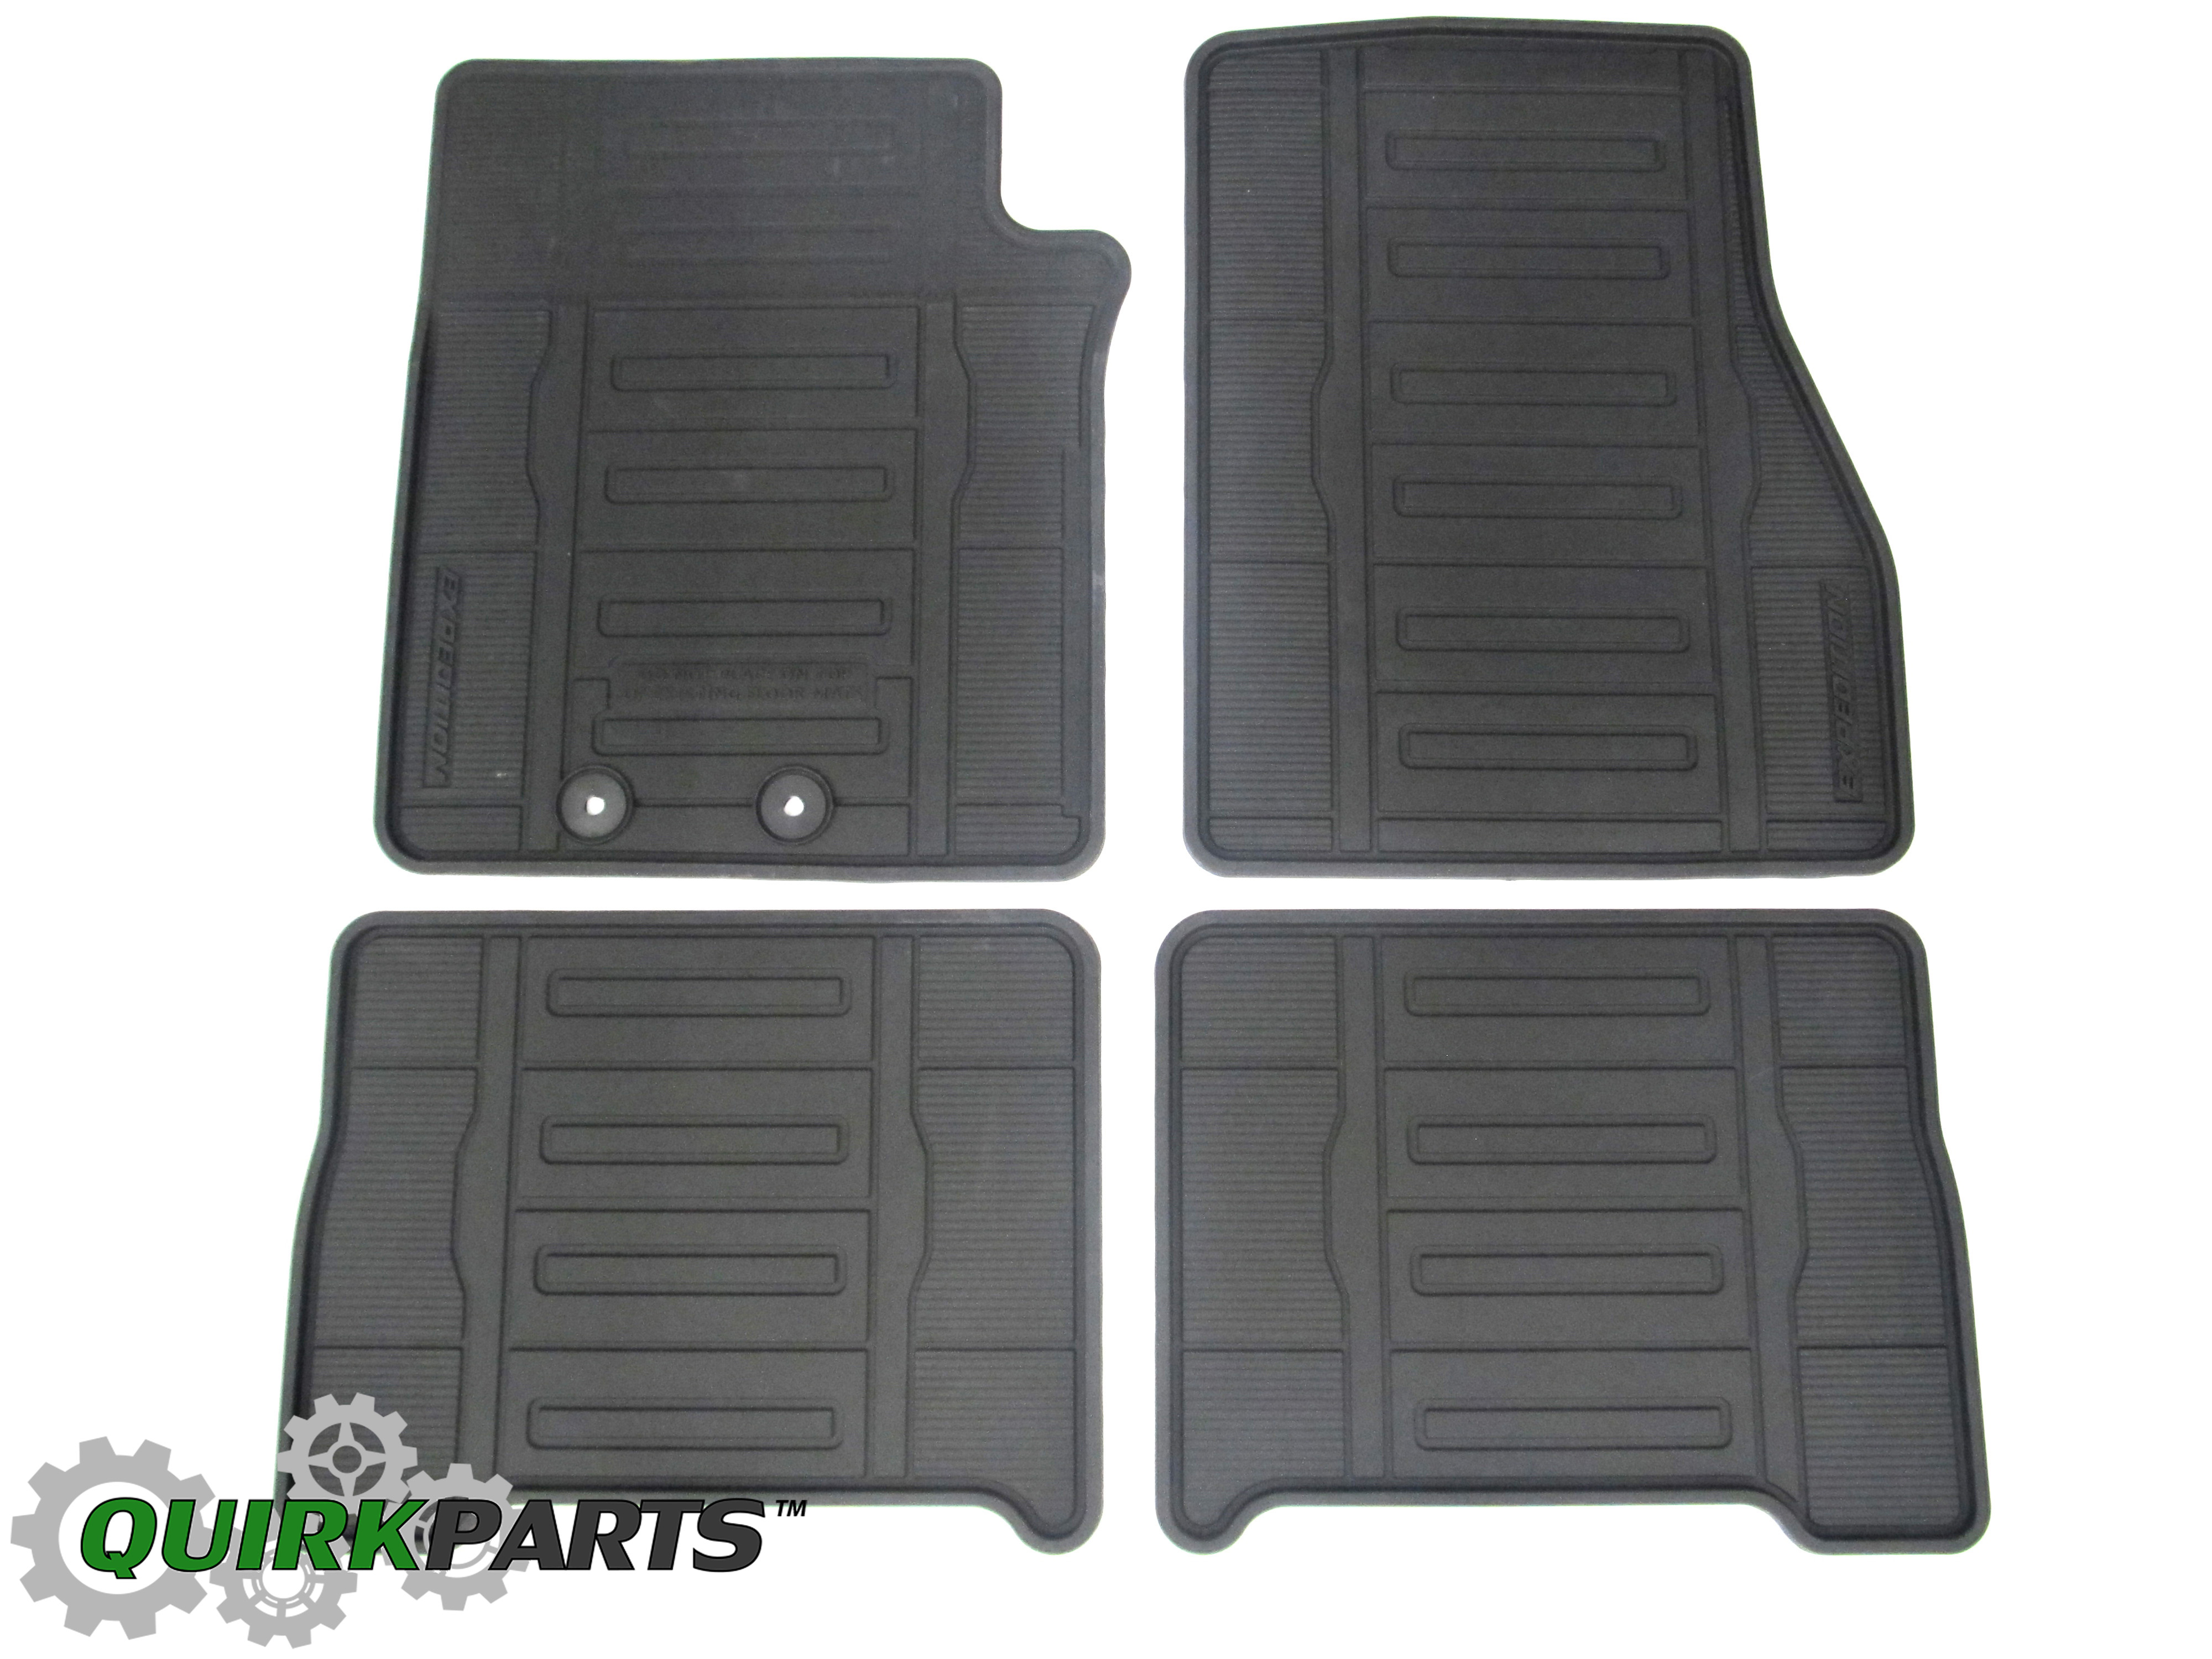 Rubber floor mats expedition - 2015 2016 Ford Expedition Black All Weather Rubber Vinyl Floor Mats 4 Piece Oem